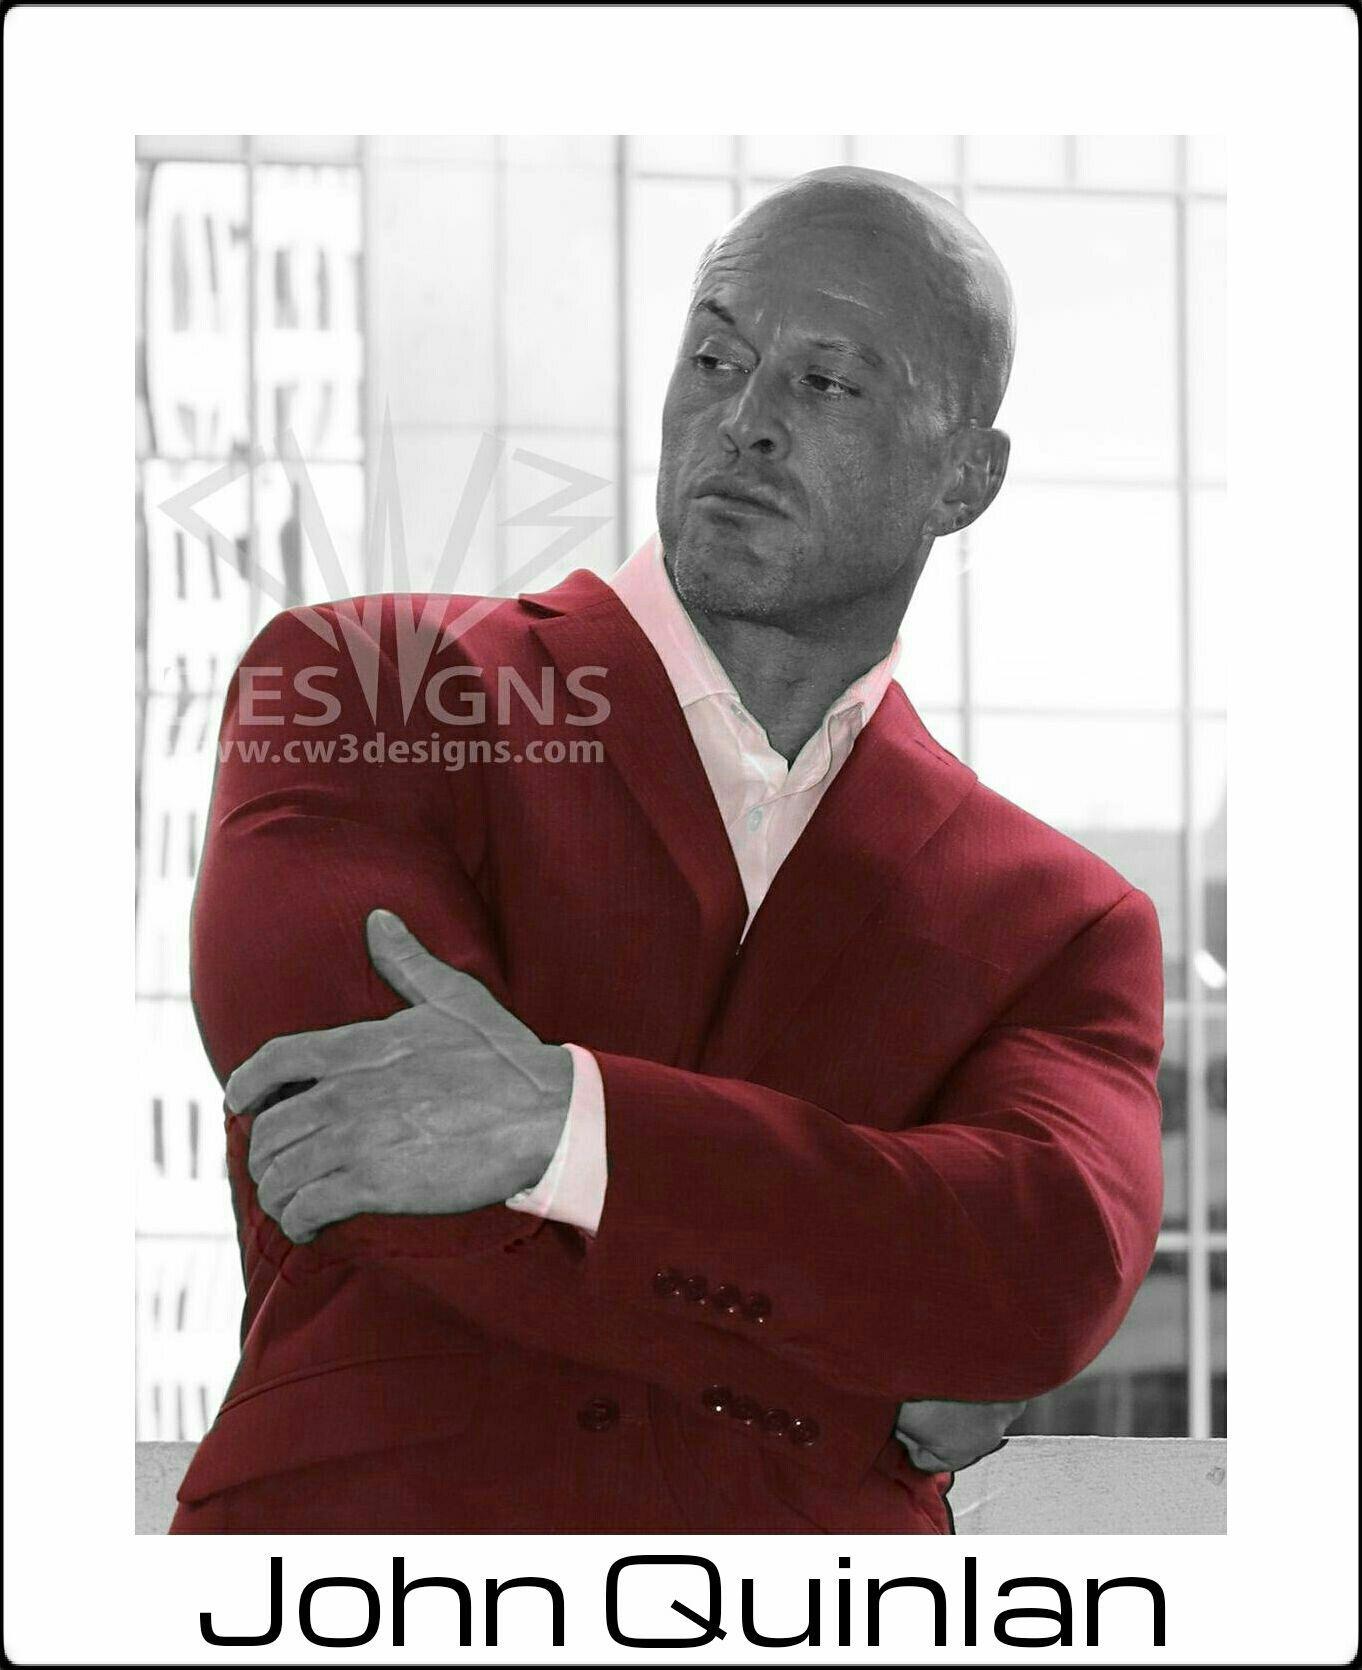 Cover Model & Actor John Joseph Quinlan Celebrity Promo #JohnQuinlan